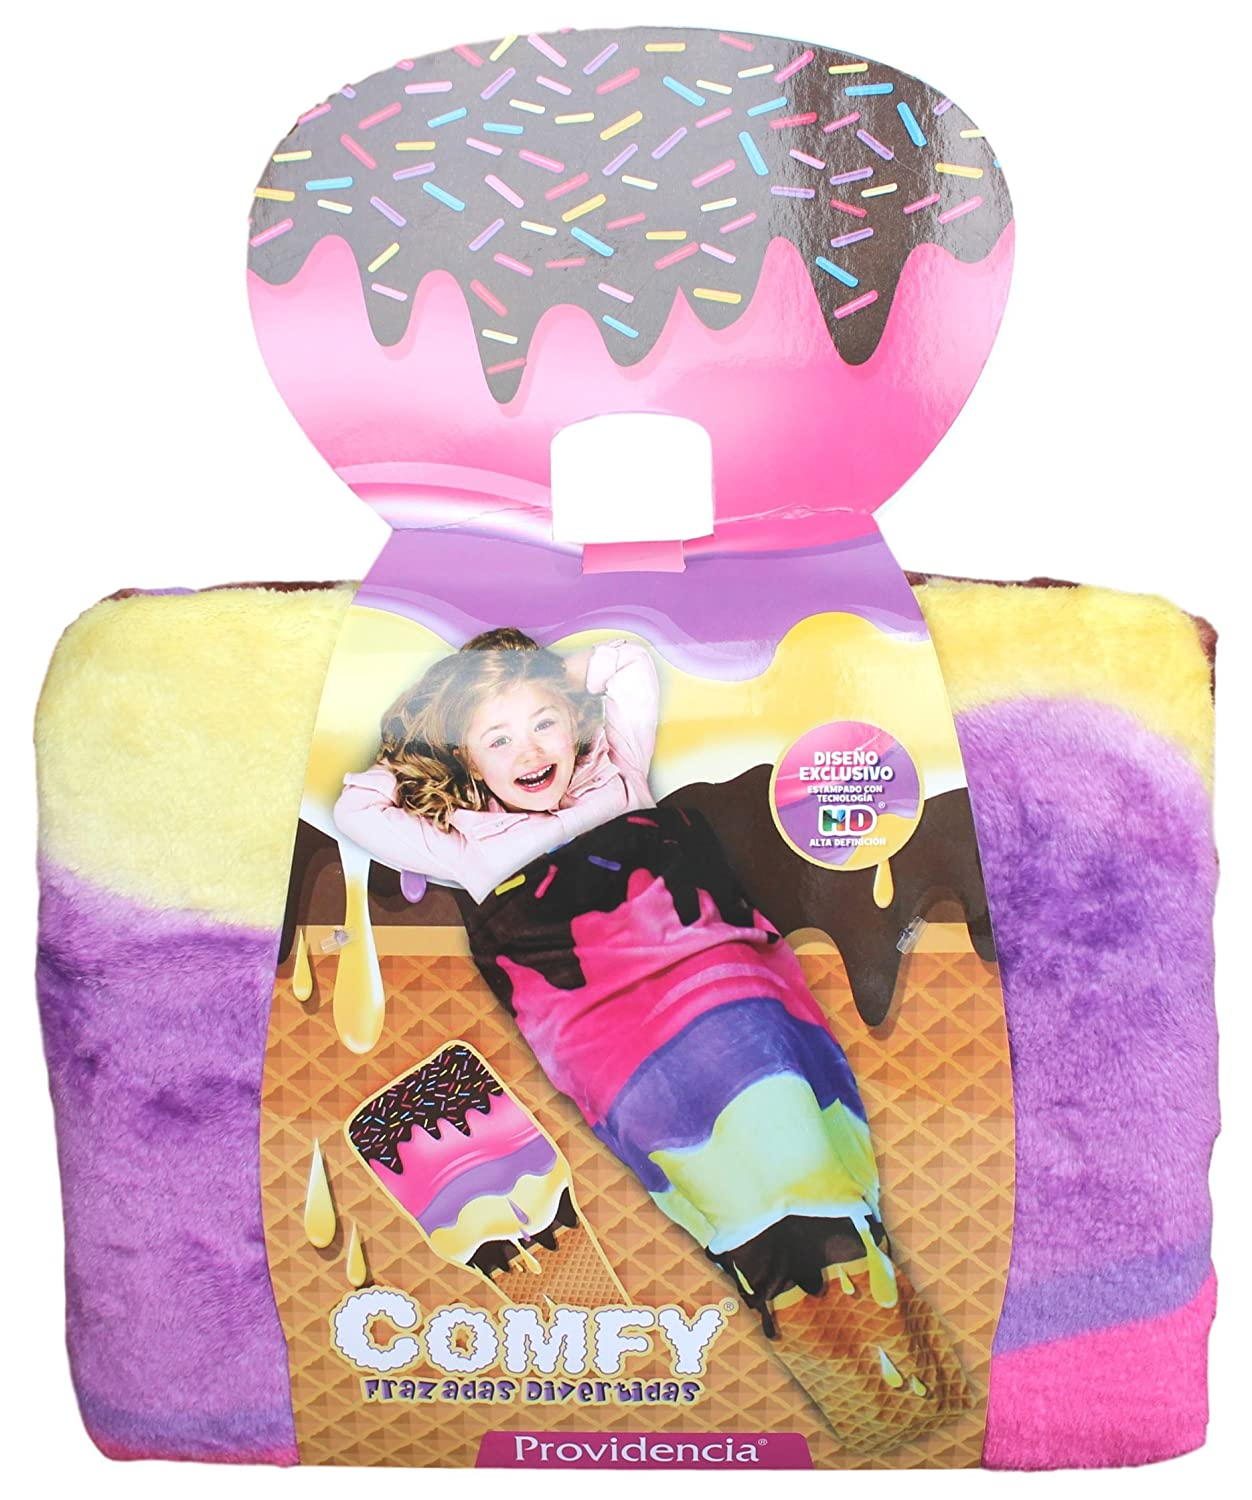 Comfy Tails Super Soft Blankets For Kids 41